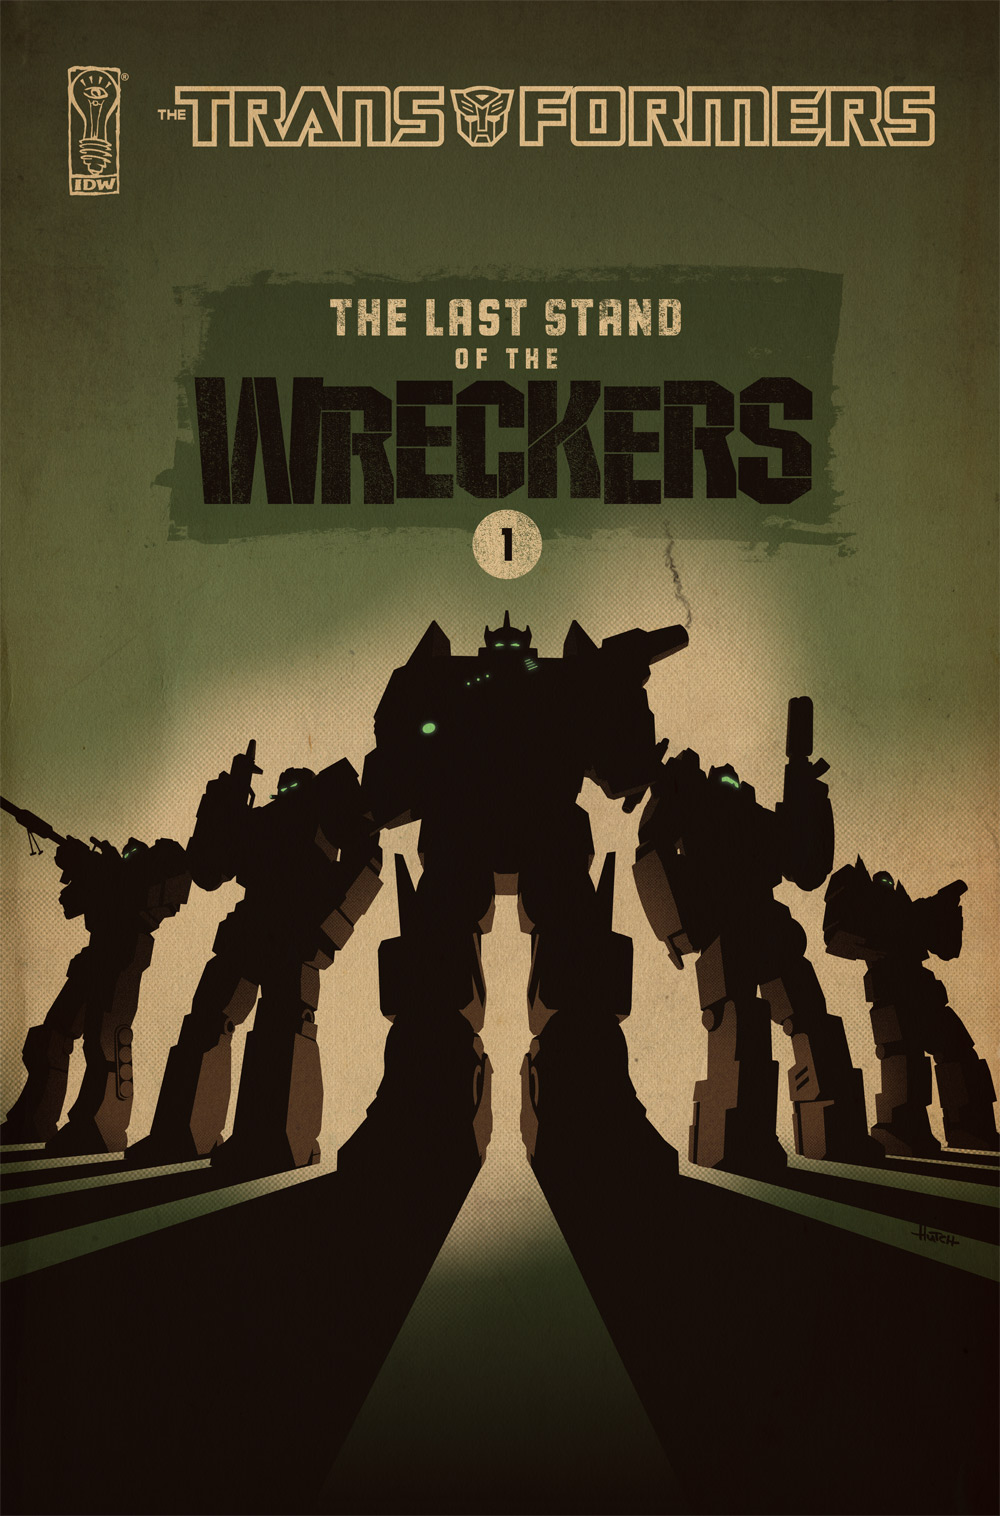 Re: Last Stand of the Wreckers